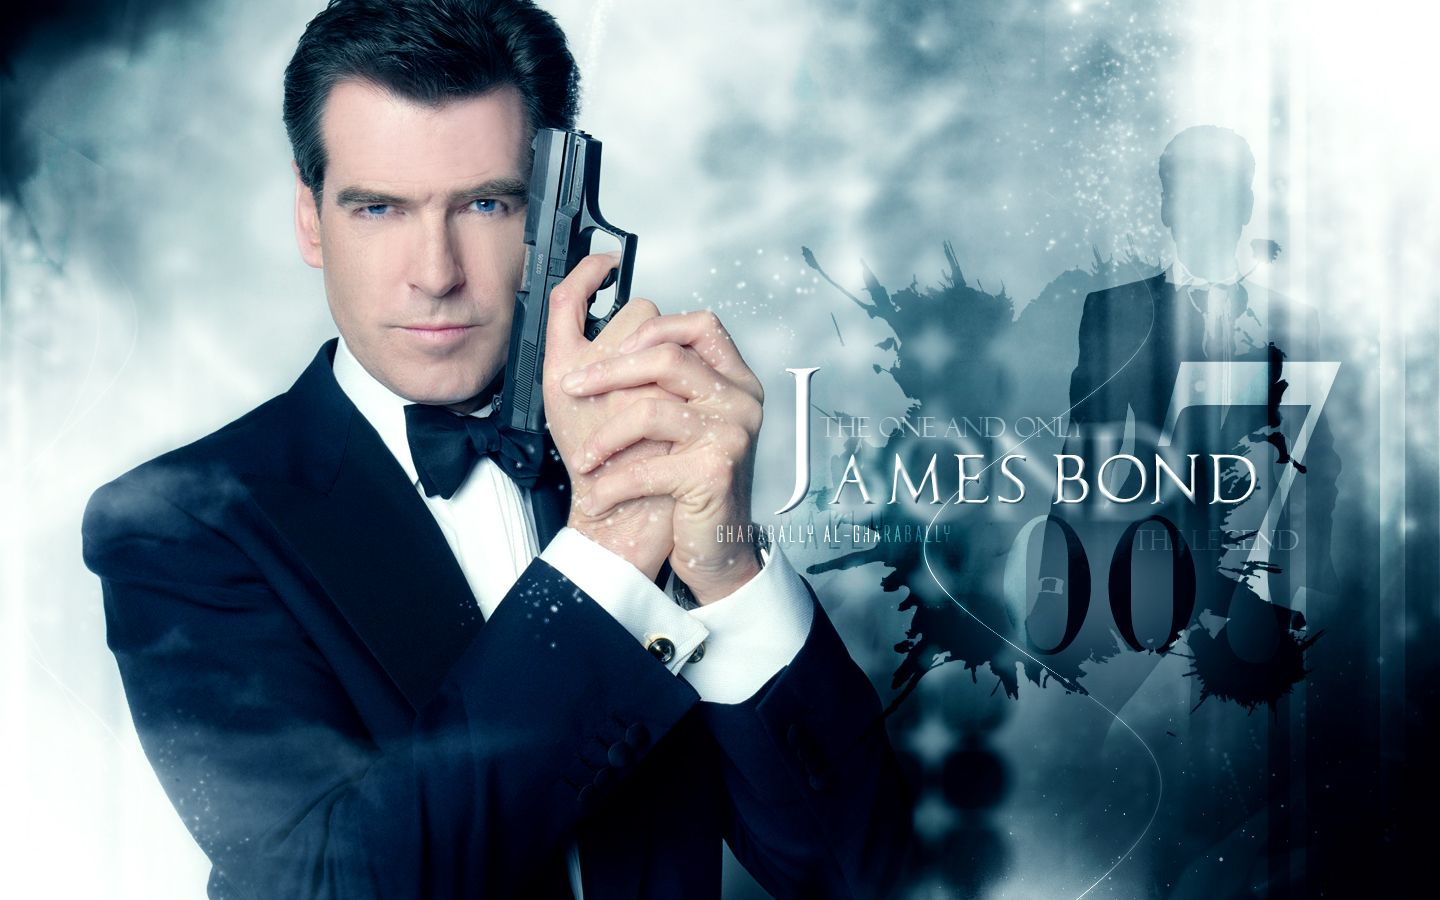 Pierce Brosnan says it's time for black or gay 007, but what about